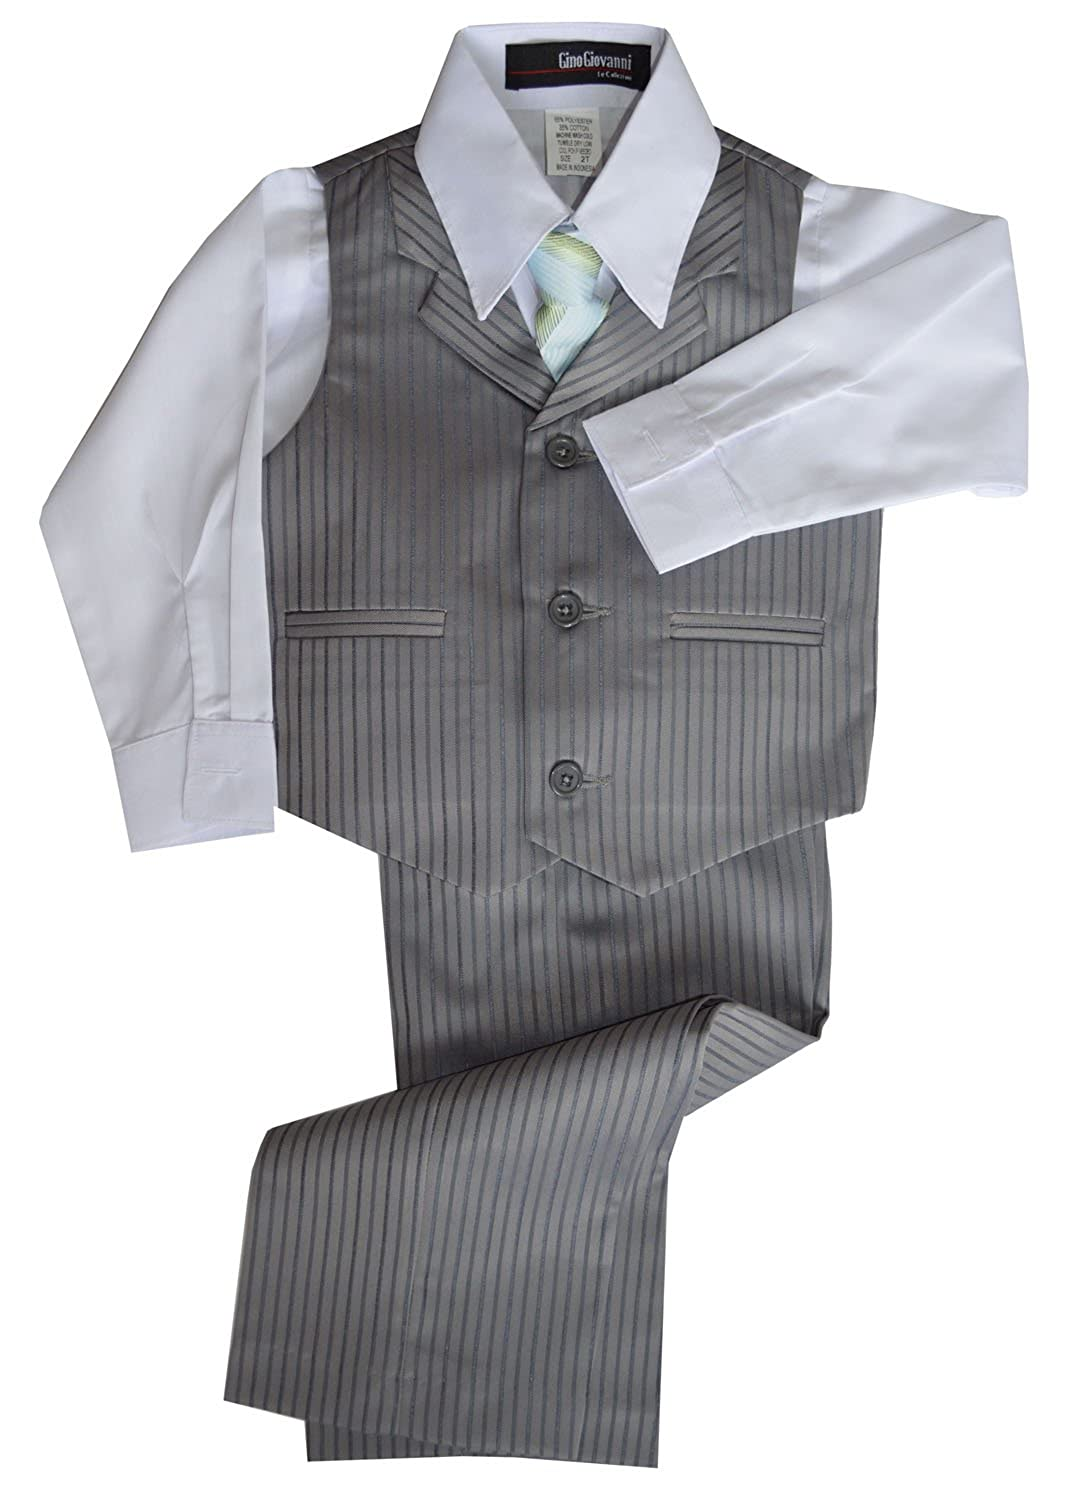 Vintage Style Children's Clothing: Girls, Boys, Baby, Toddler Gino Giovanni Pinstripe Boys Formal Dresswear Vest Set $26.18 AT vintagedancer.com